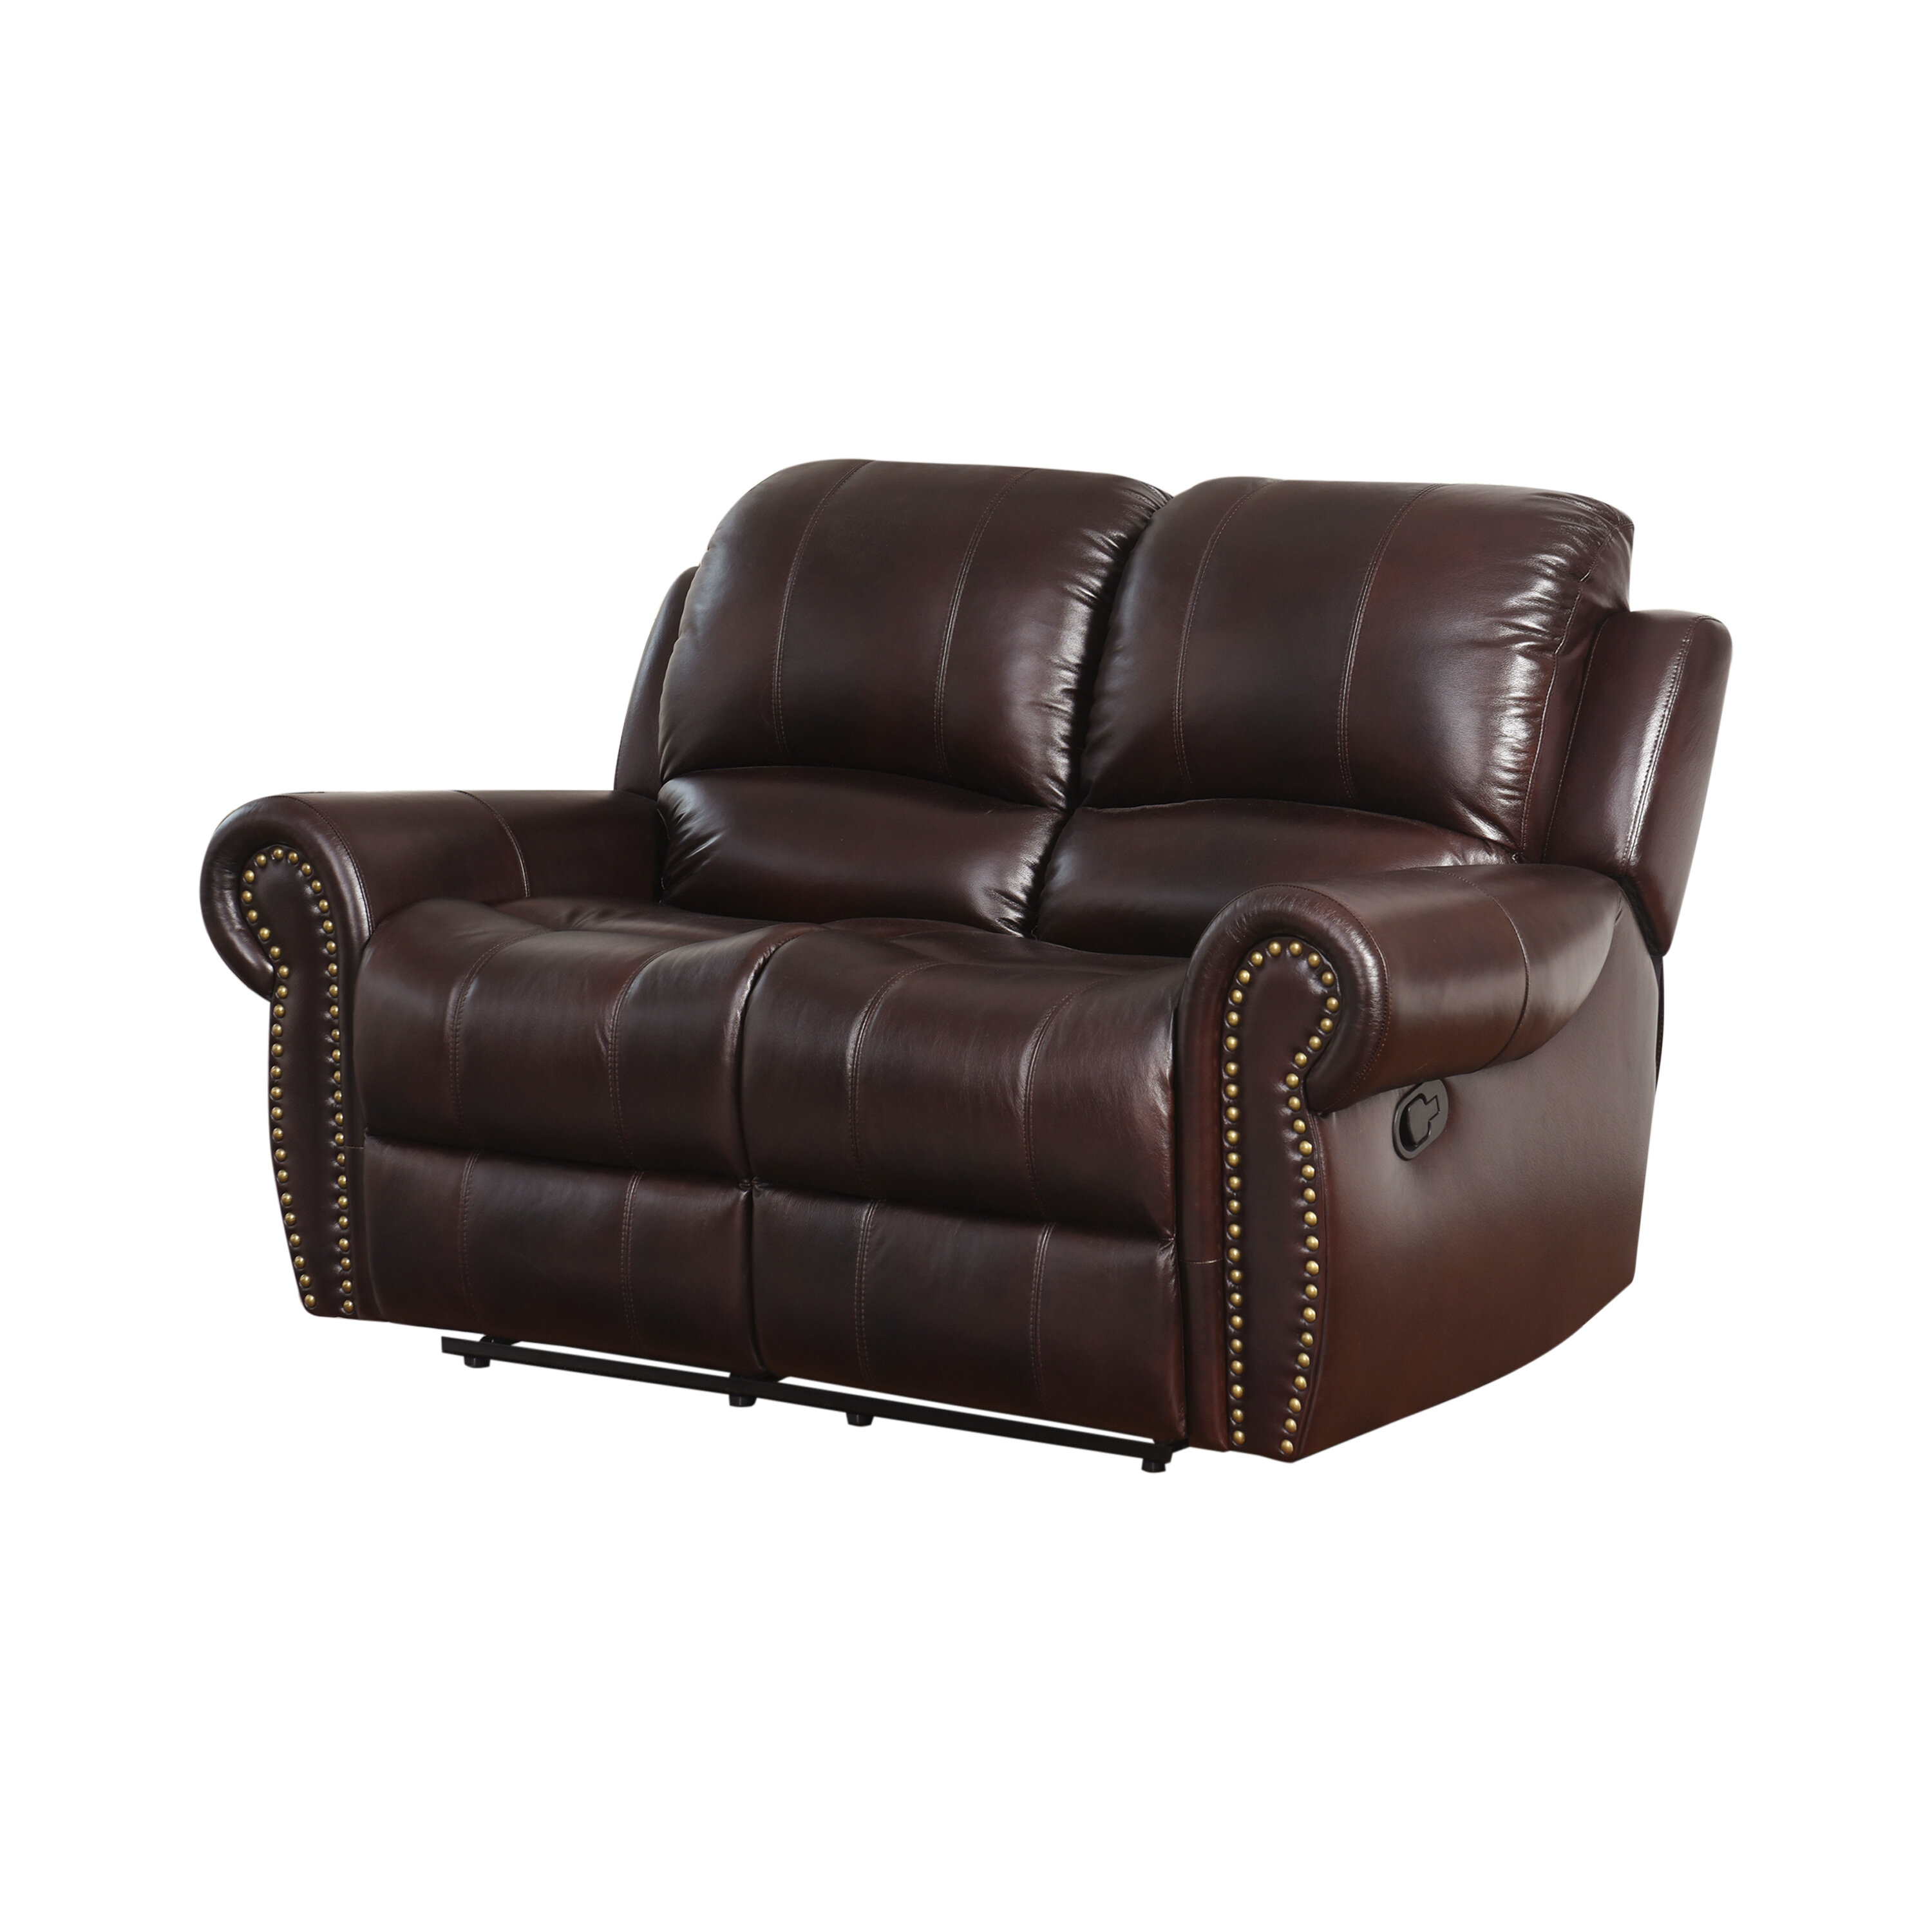 Phenomenal Barnsdale Reclining Loveseat Pabps2019 Chair Design Images Pabps2019Com